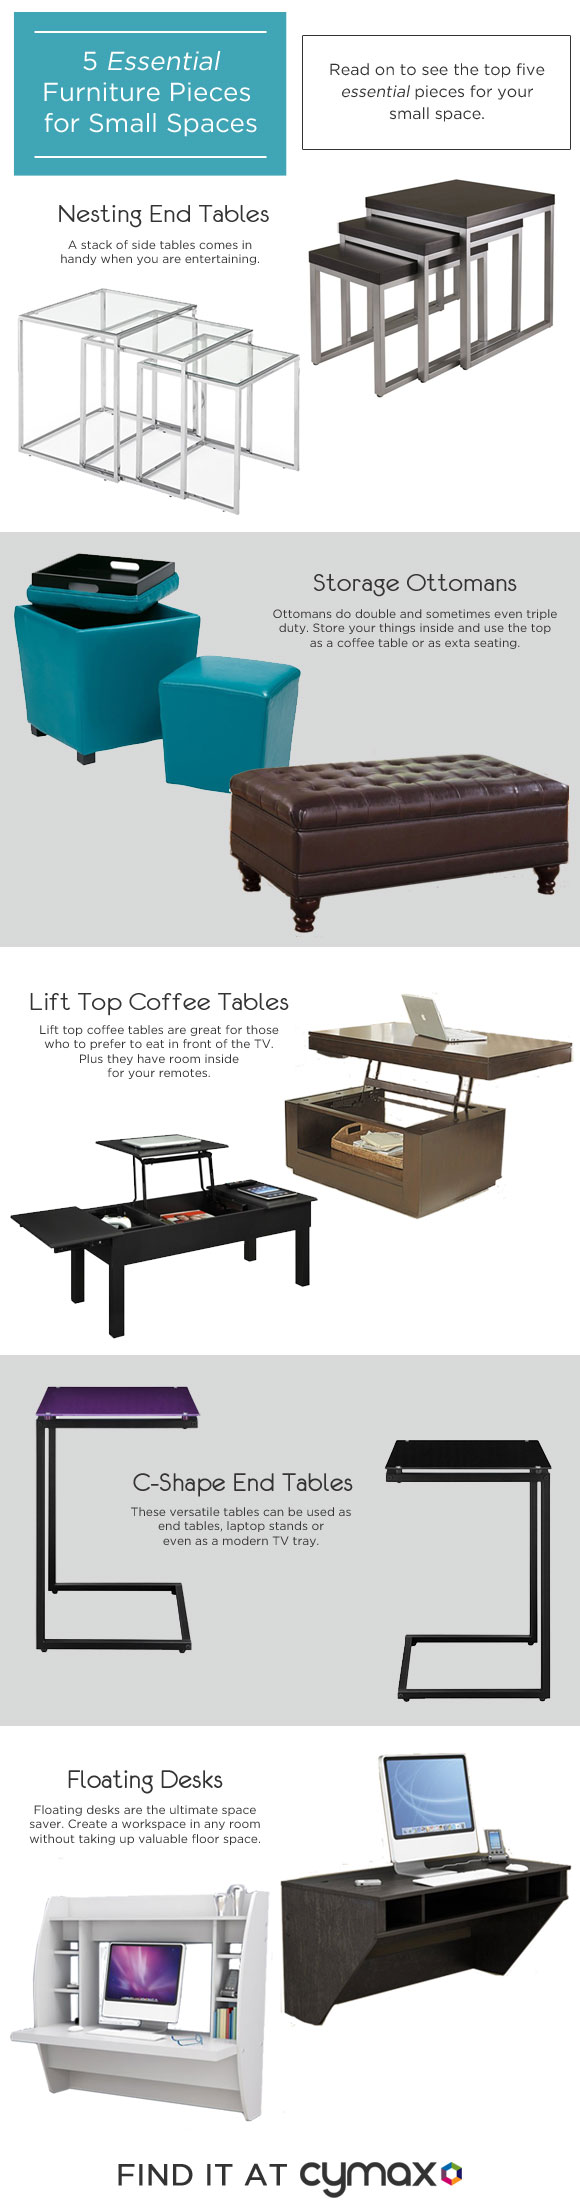 5 Essential Furniture Pieces for Your Small Space